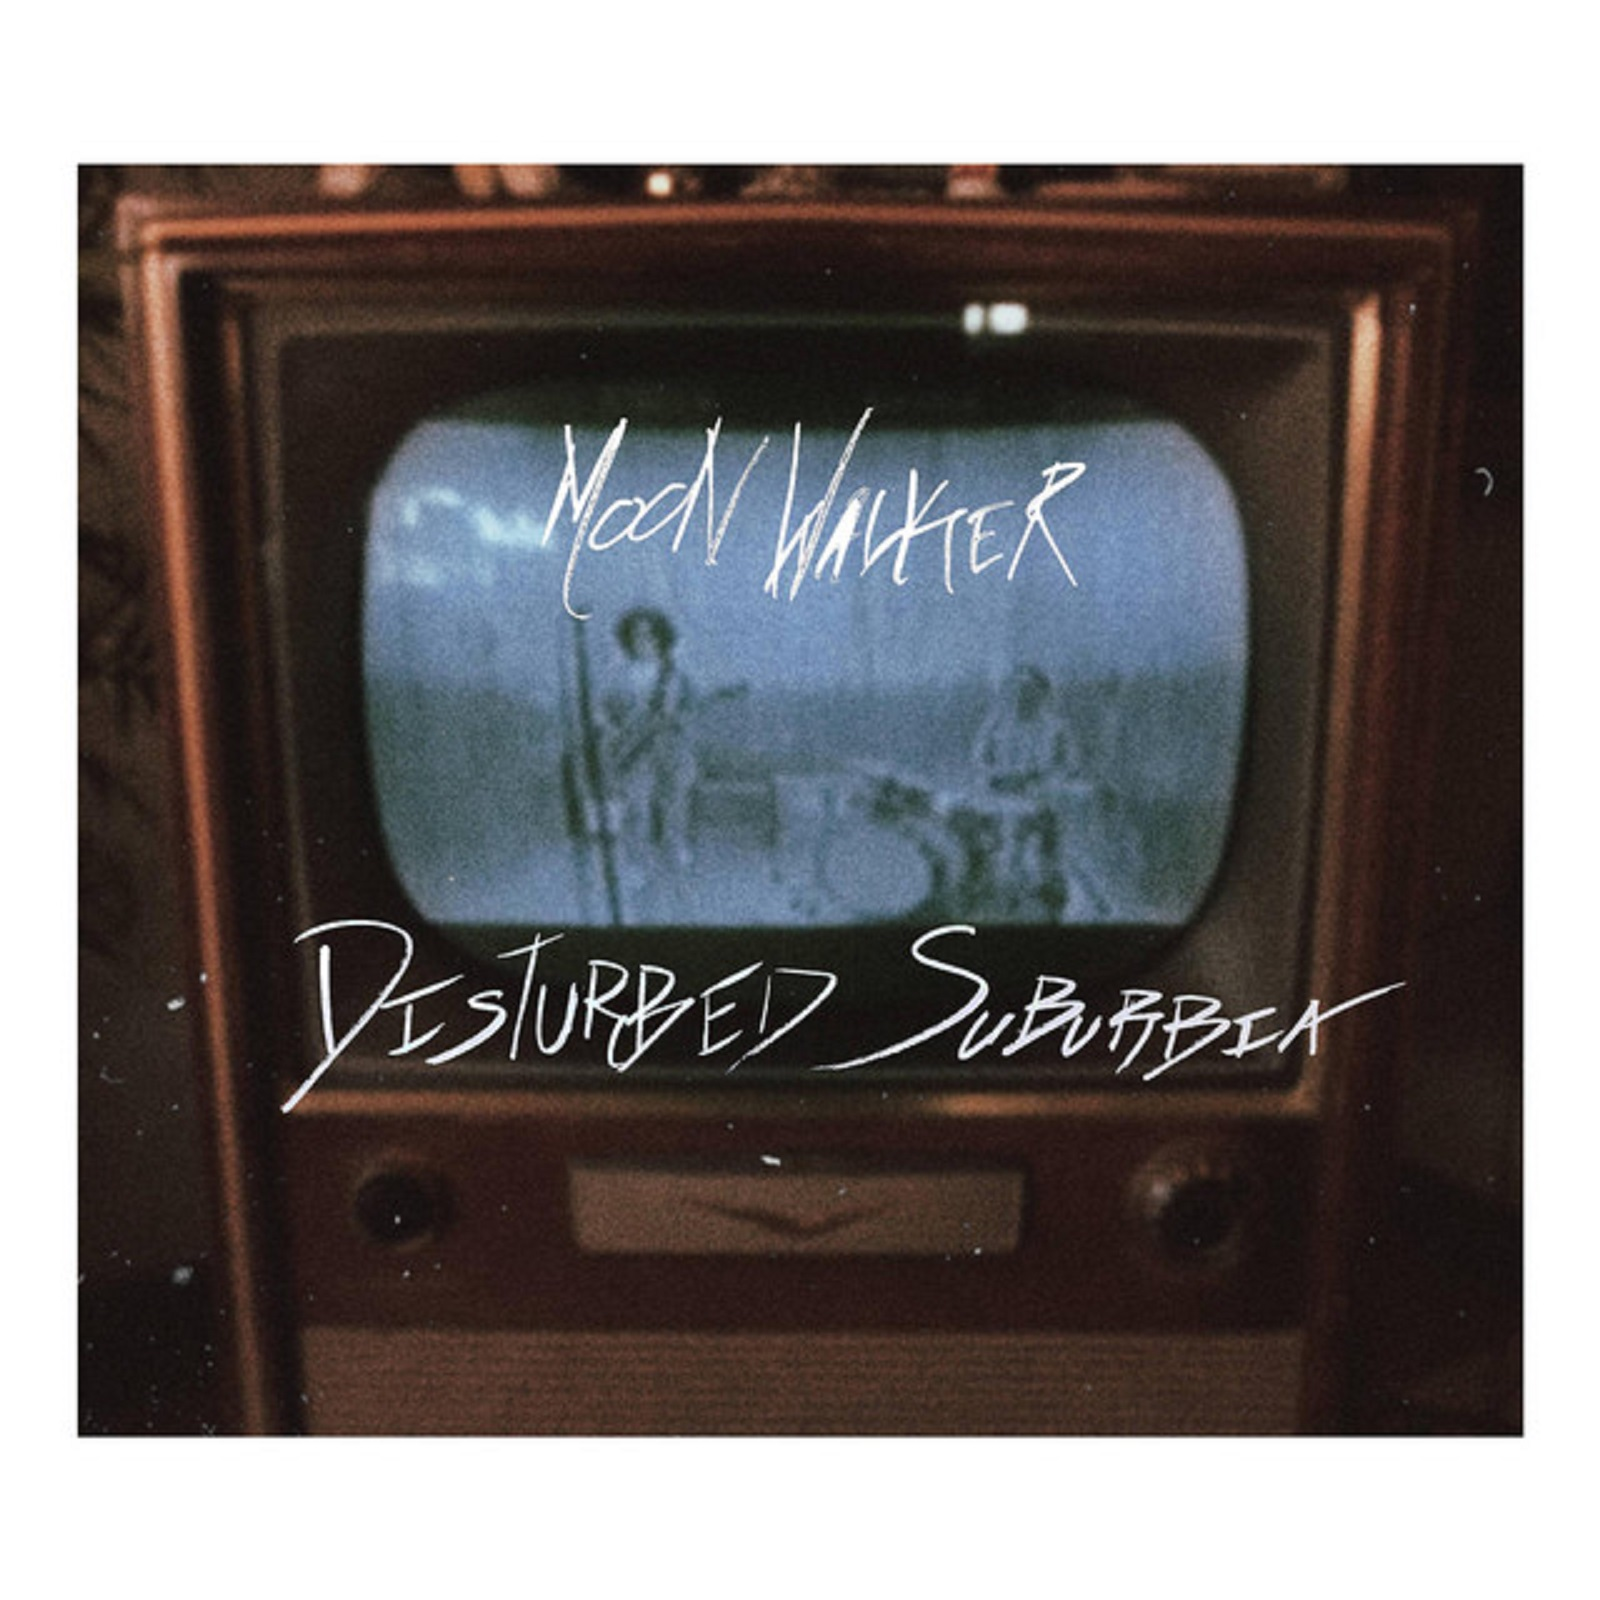 """You are currently viewing The Daily Feature: Listening to Moon Walker's Newest Single """"Disturbed Suburbia"""""""